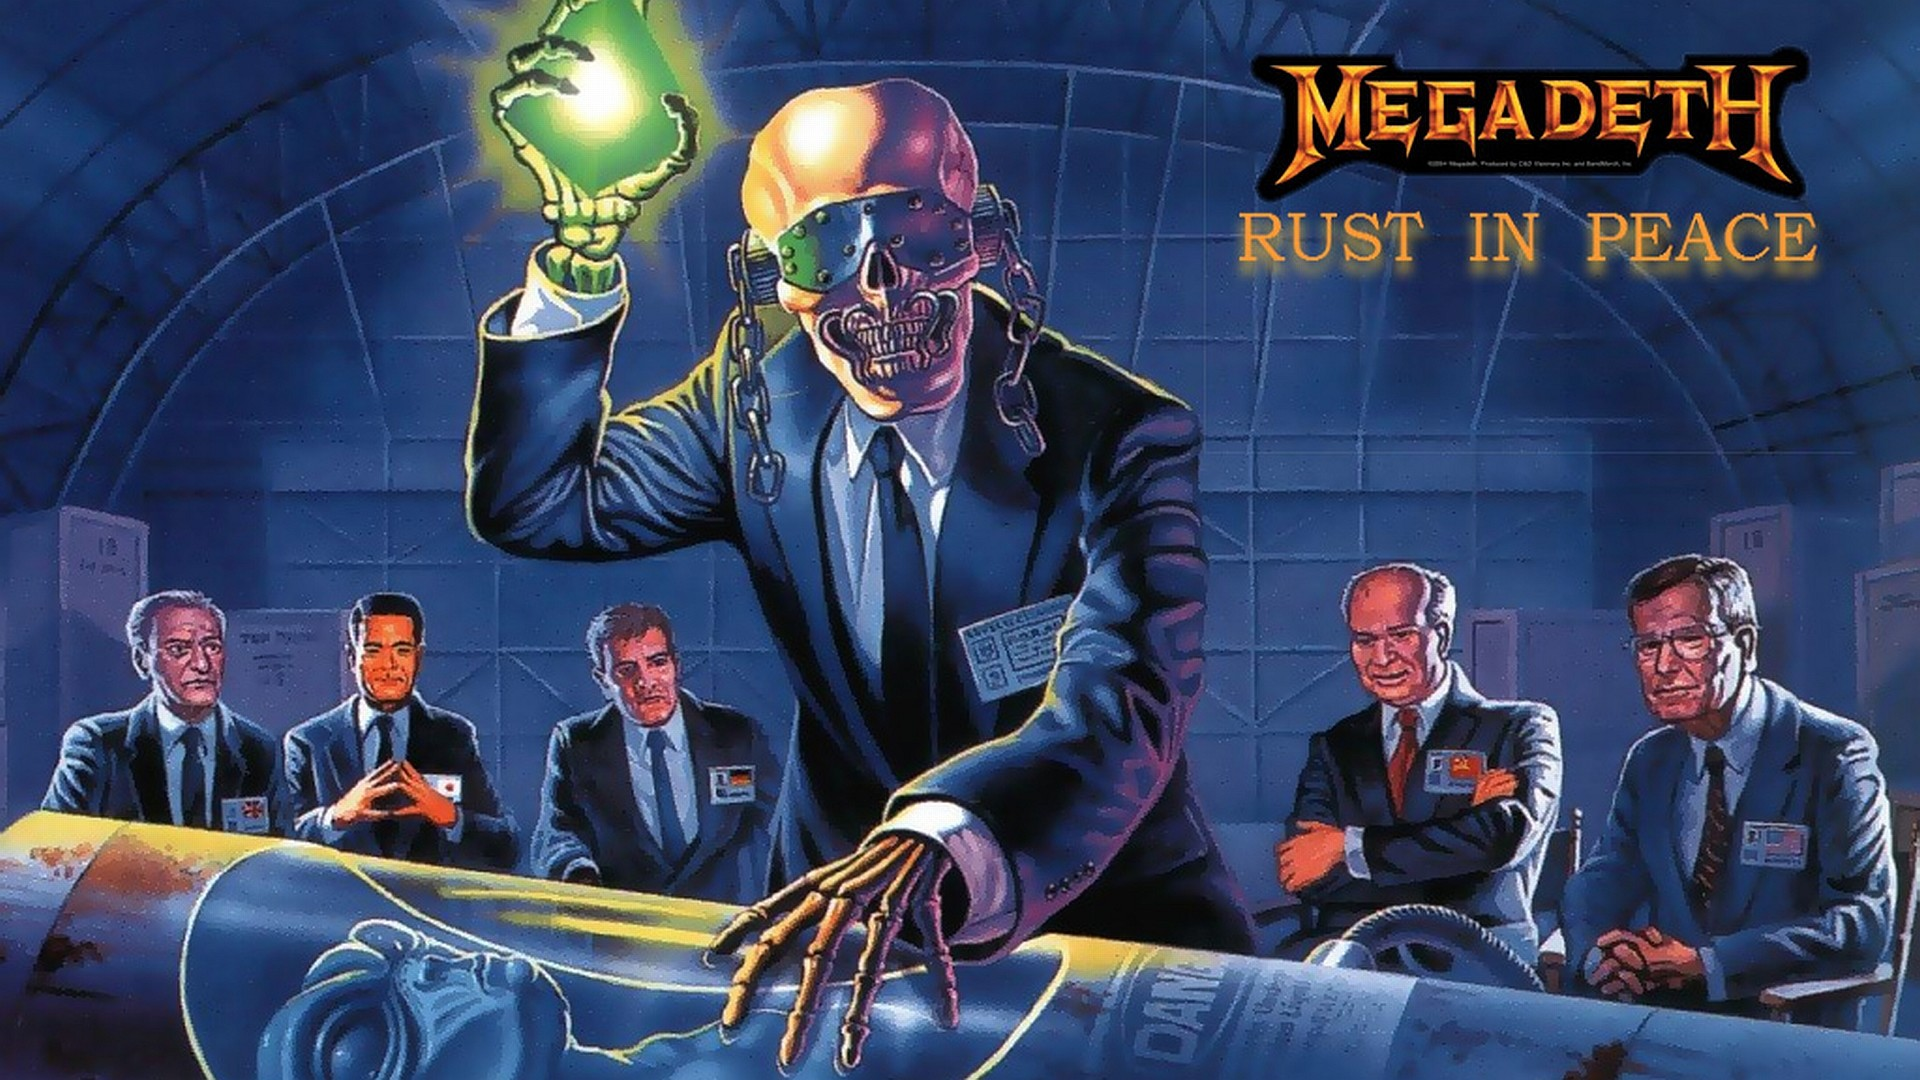 1920x1080 Free megadeth wallpaper background